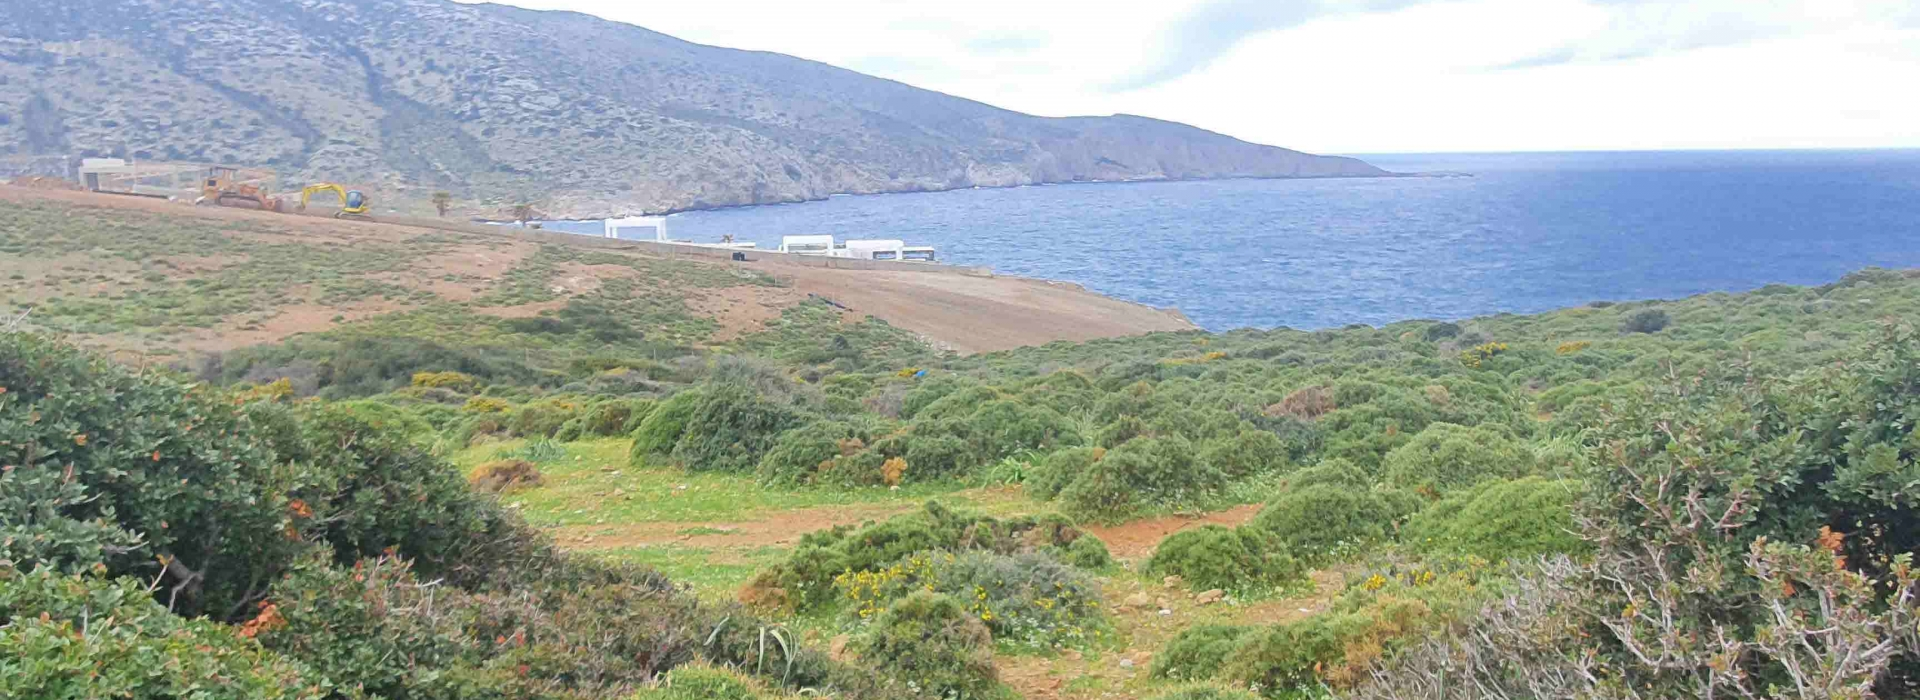 LAND PLOT 43.000 m² FOR SALE IN AGIA PELAGIA